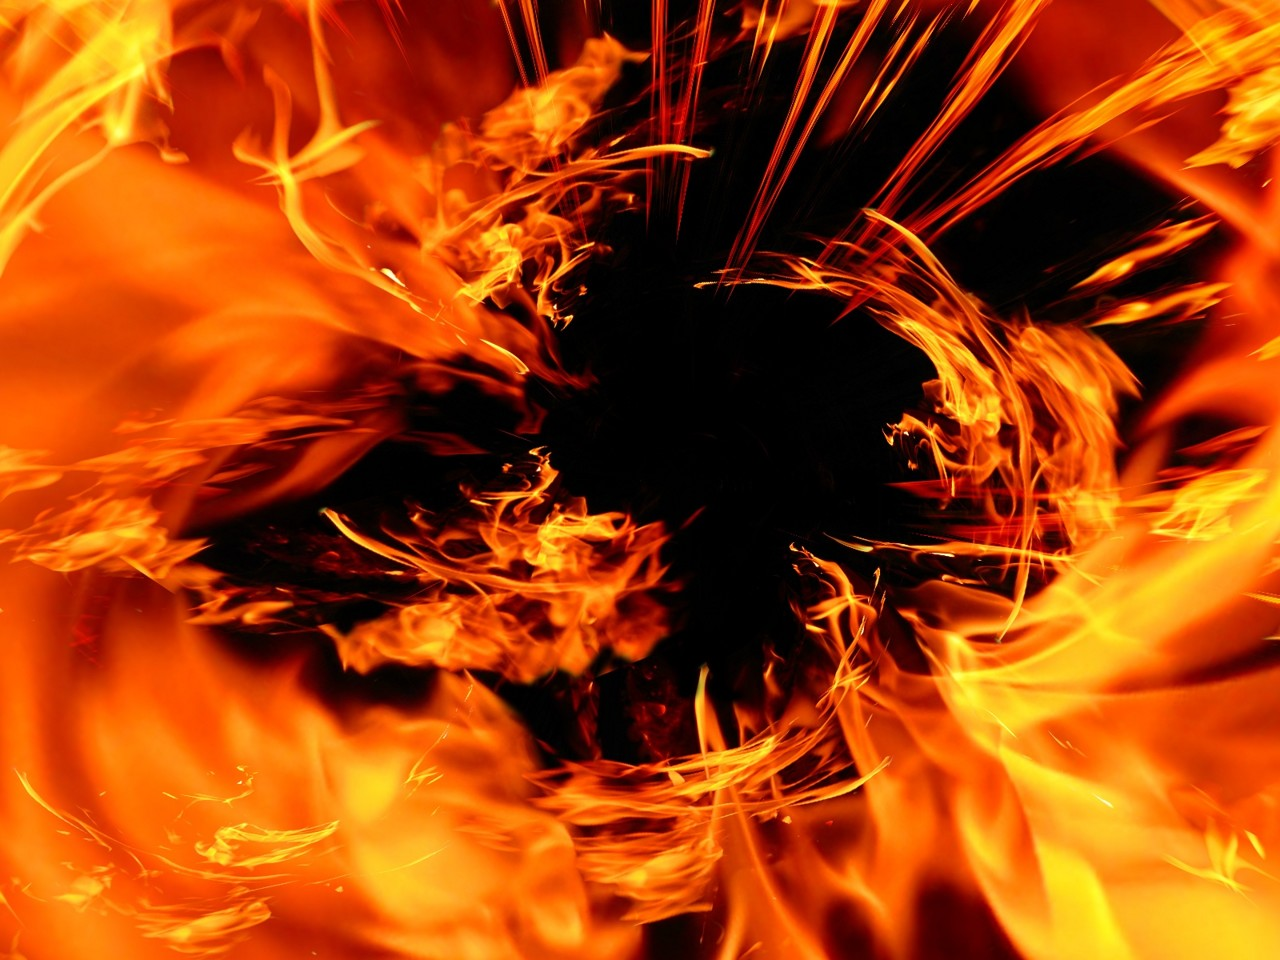 hd fire wallpapers wallpaper for backgrounds wallpapers backgrounds hd 1280x960